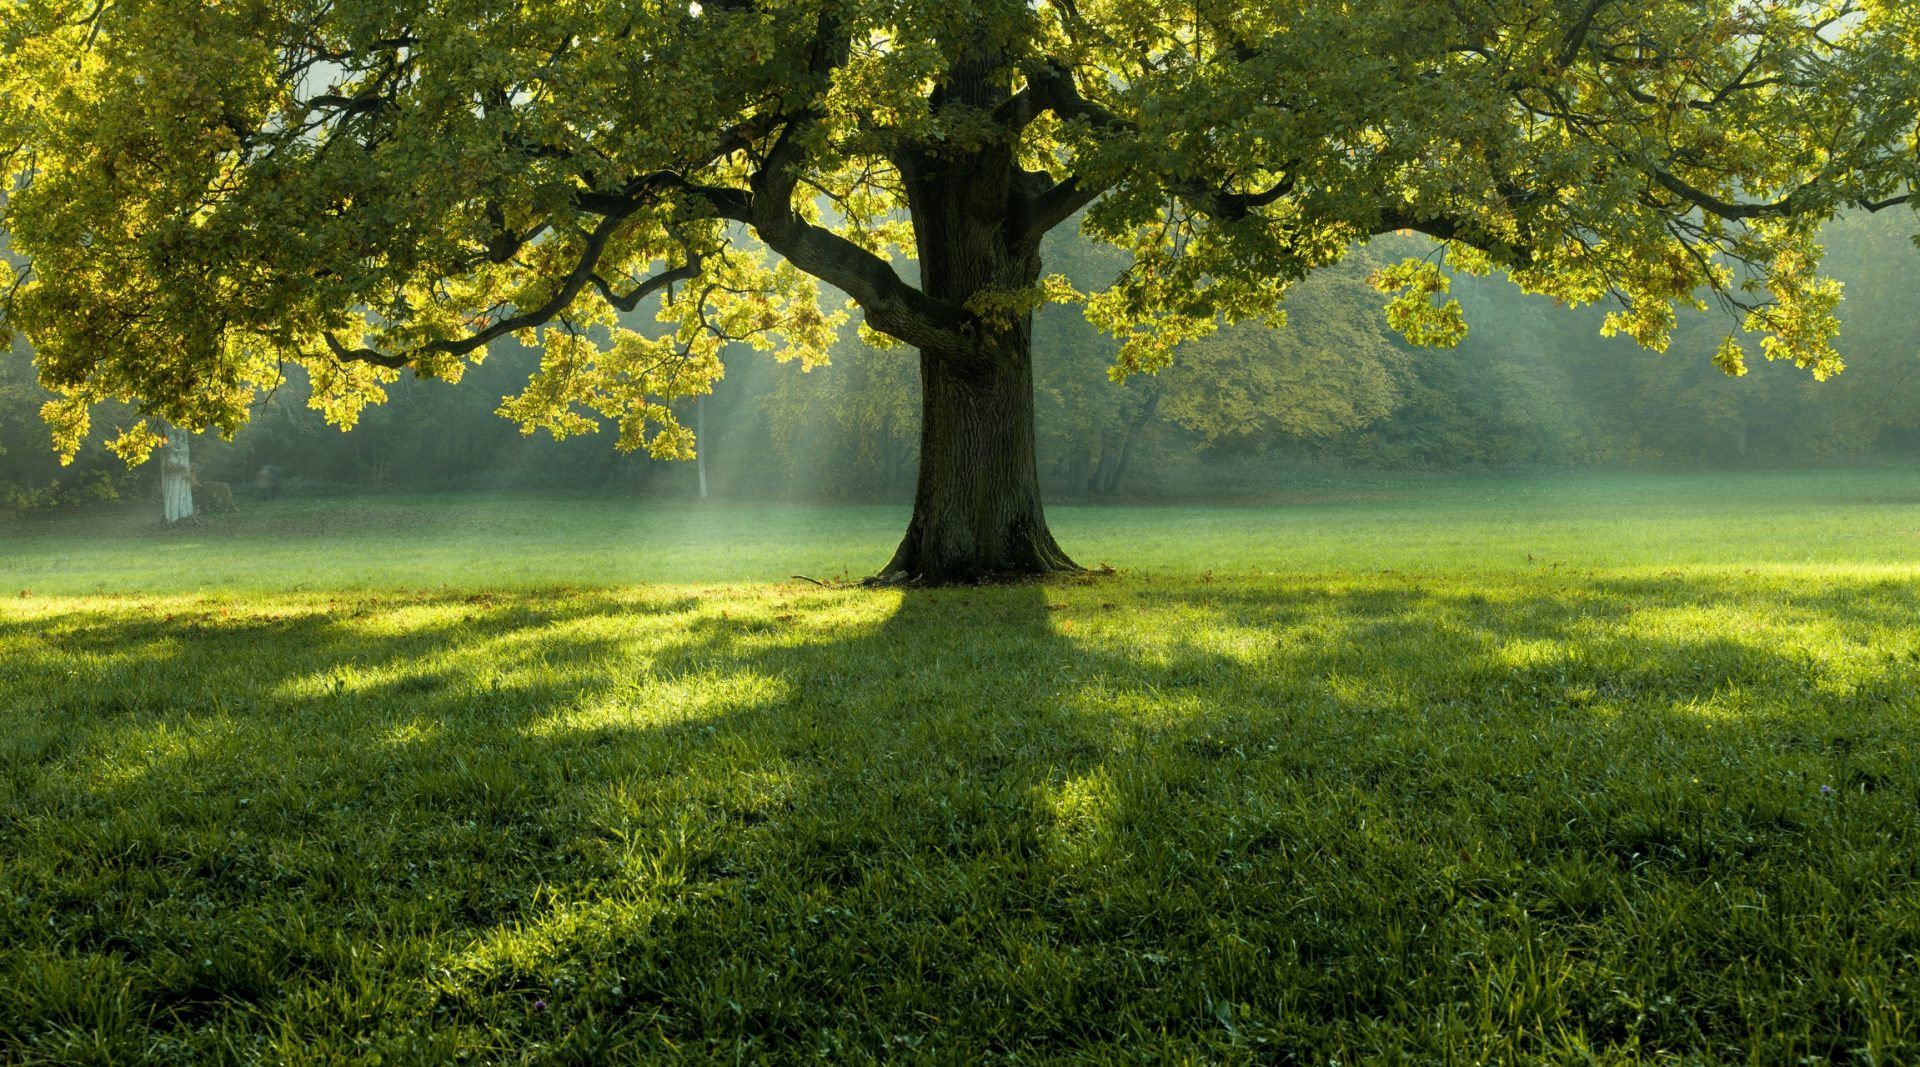 beautiful-tree-in-the-middle-of-a-field-covered-with-grass-with-the-tree-line-in-the-background-2